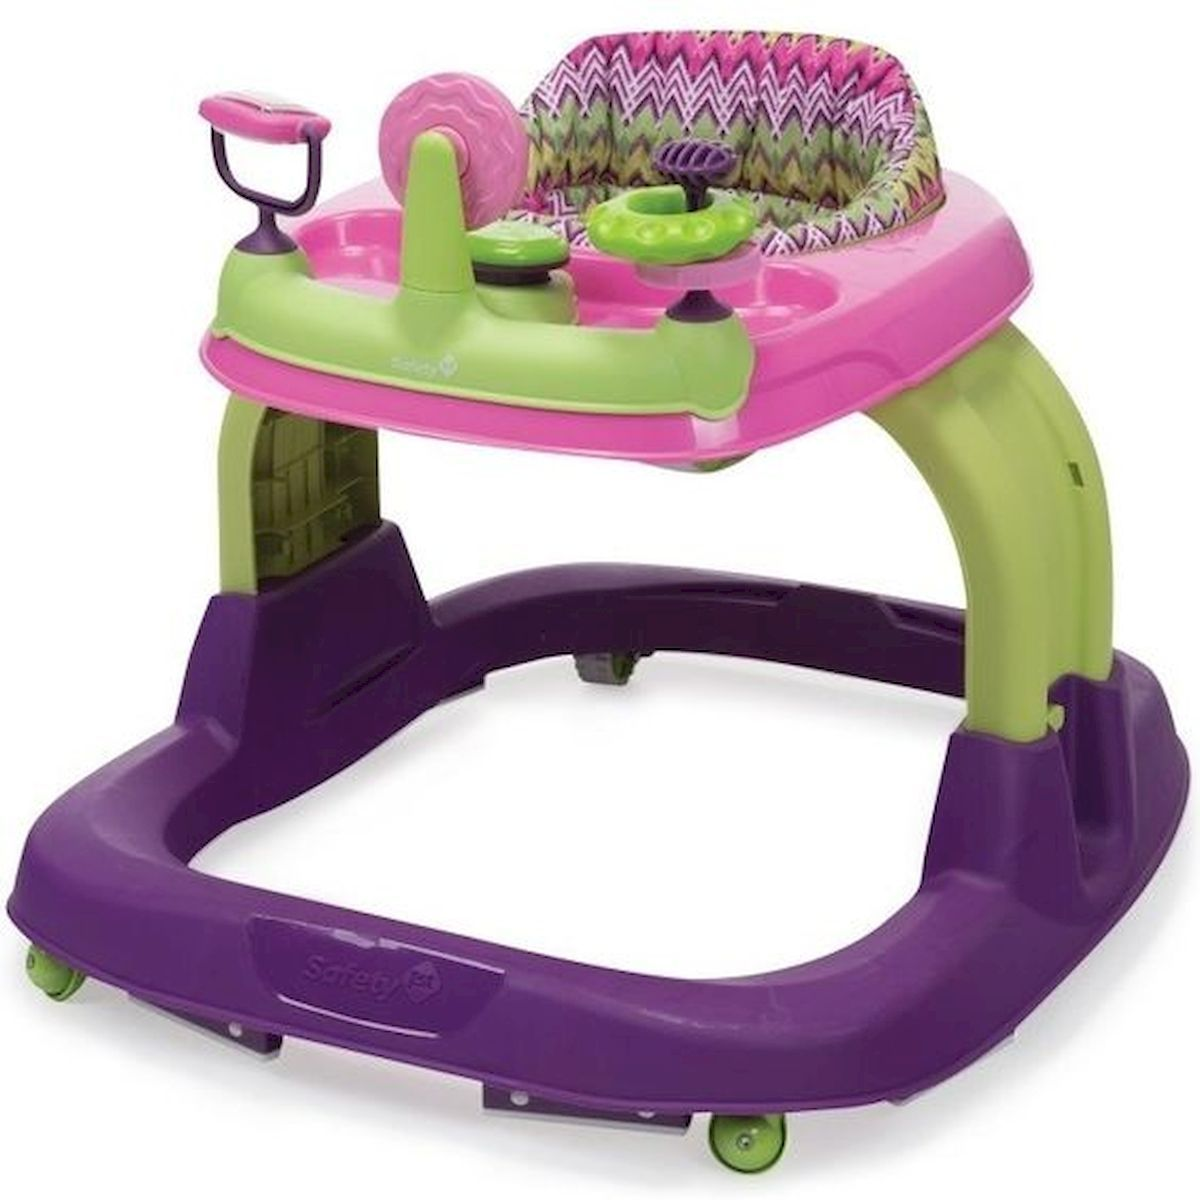 50 Best Baby Walker Ideas For Your Baby Safety 1st Cheap Baby